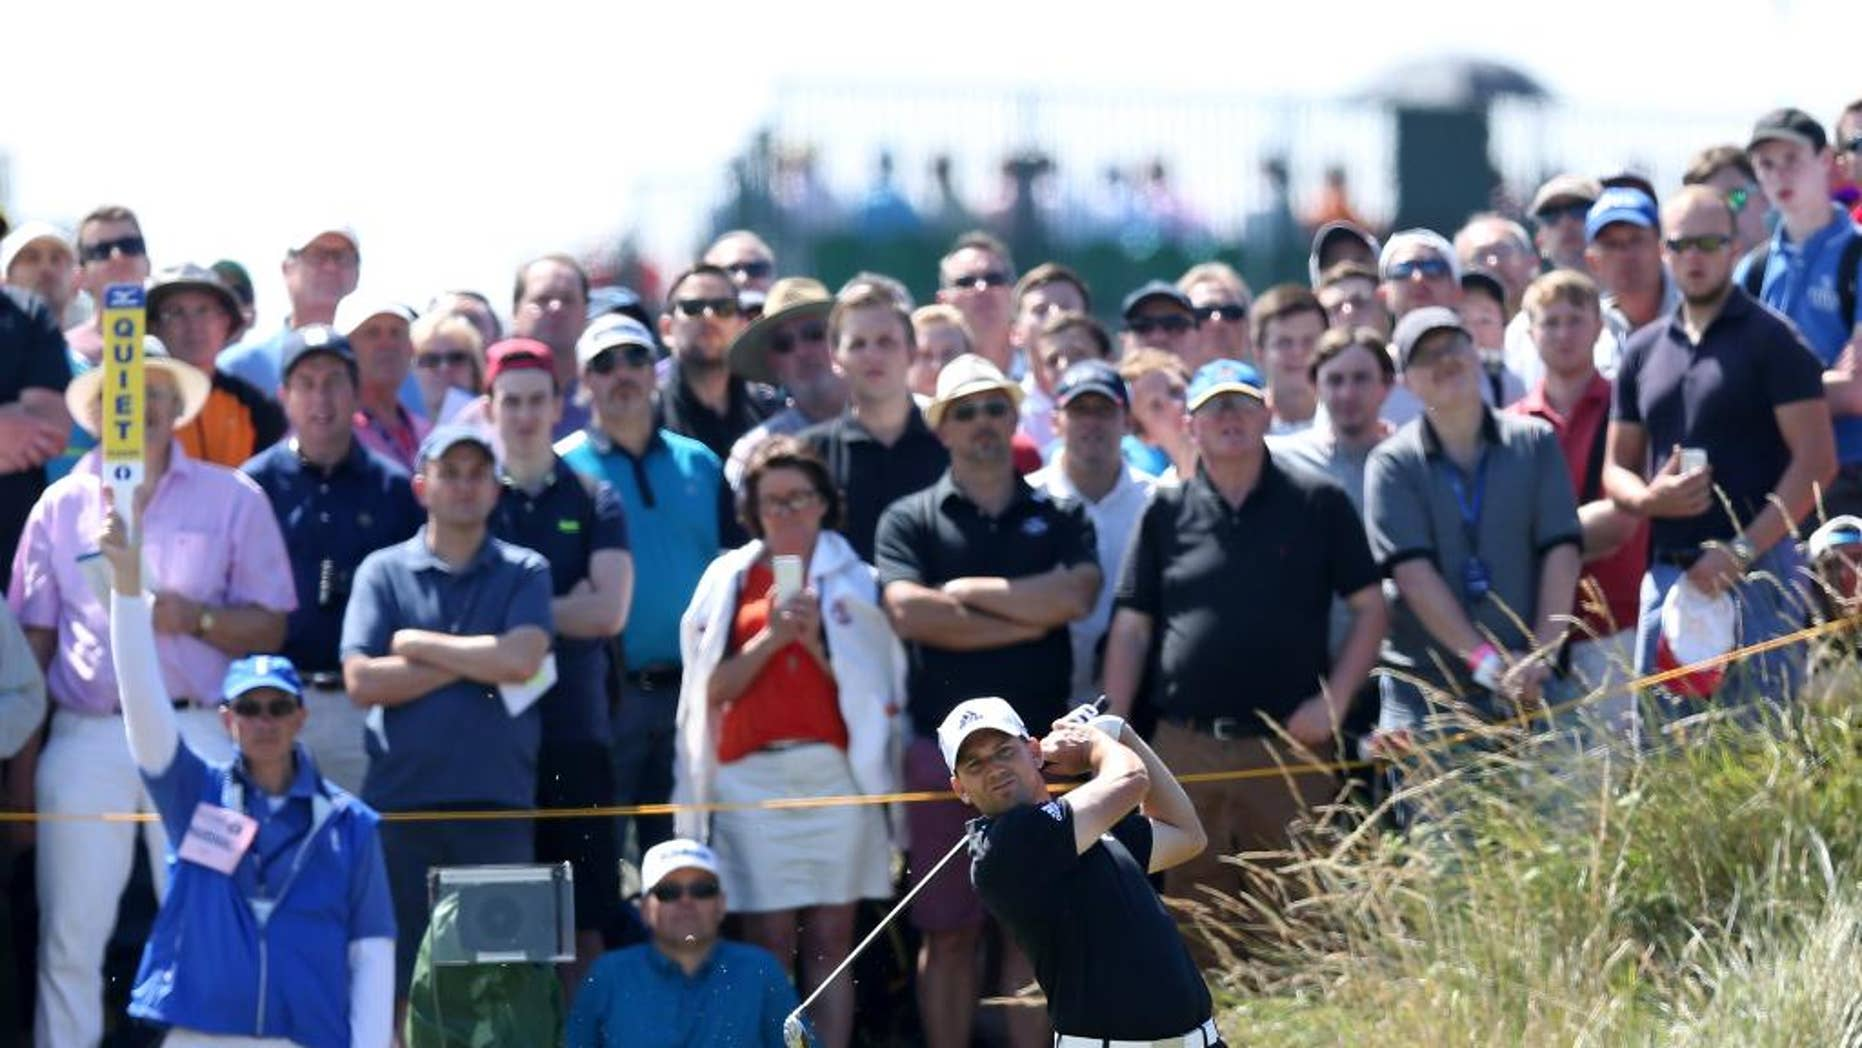 Sergio Garcia of Spain plays a shot off the 14th tee during the first day of the British Open Golf championship at the Royal Liverpool golf club, Hoylake, England, Thursday July 17, 2014. (AP Photo/Scott Heppell)